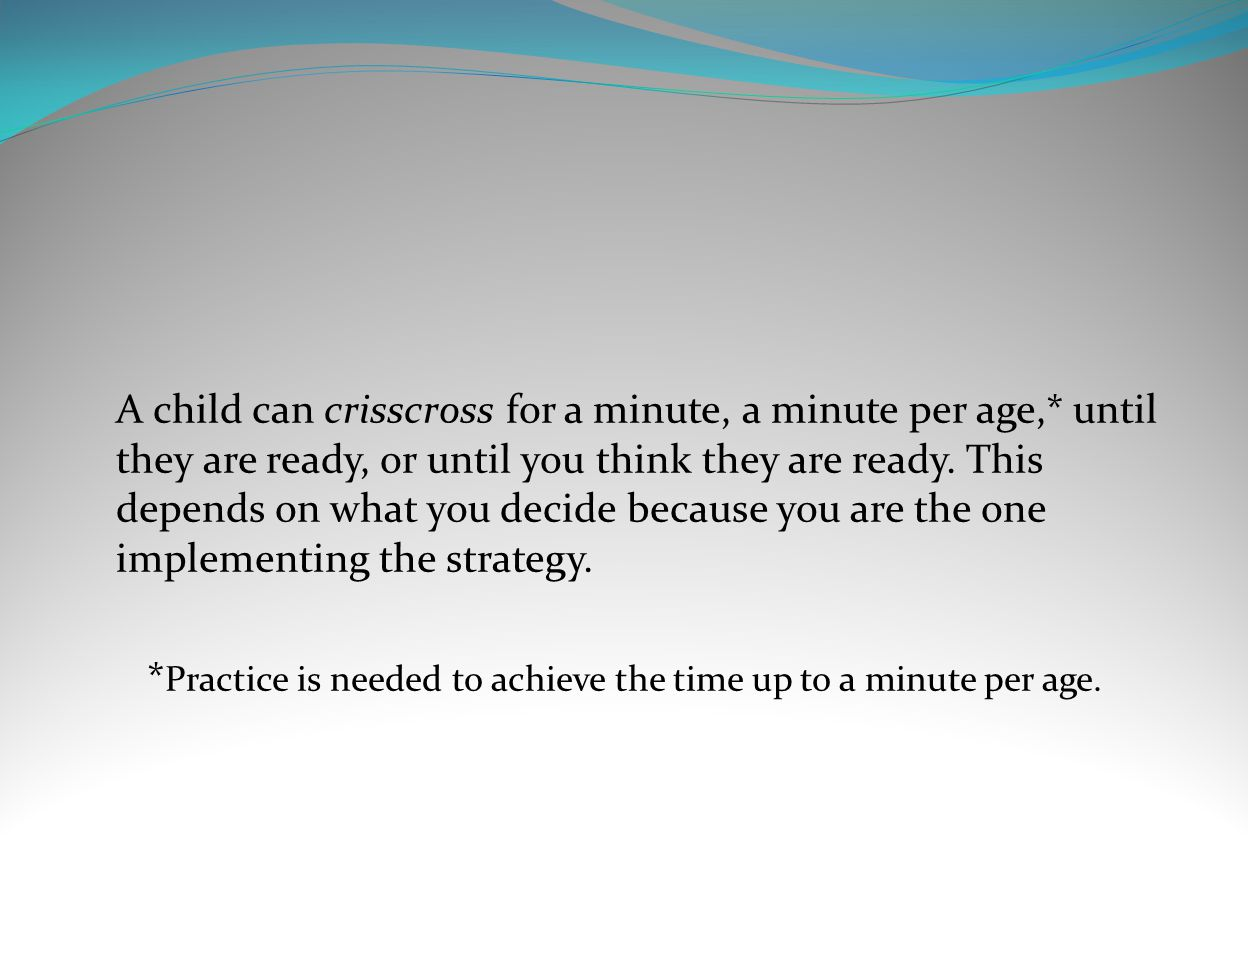 *Practice is needed to achieve the time up to a minute per age.